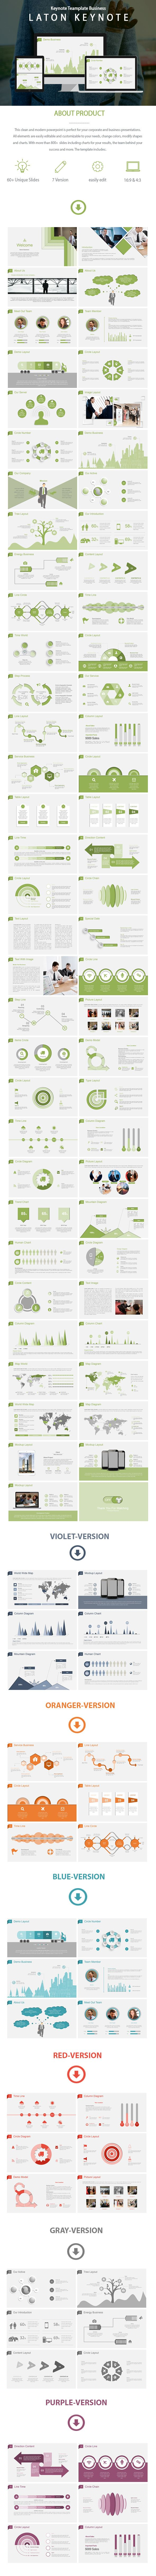 Latione Keynote Template   Download: http://graphicriver.net/item/latione-keynote-template/11068921?ref=ksioks